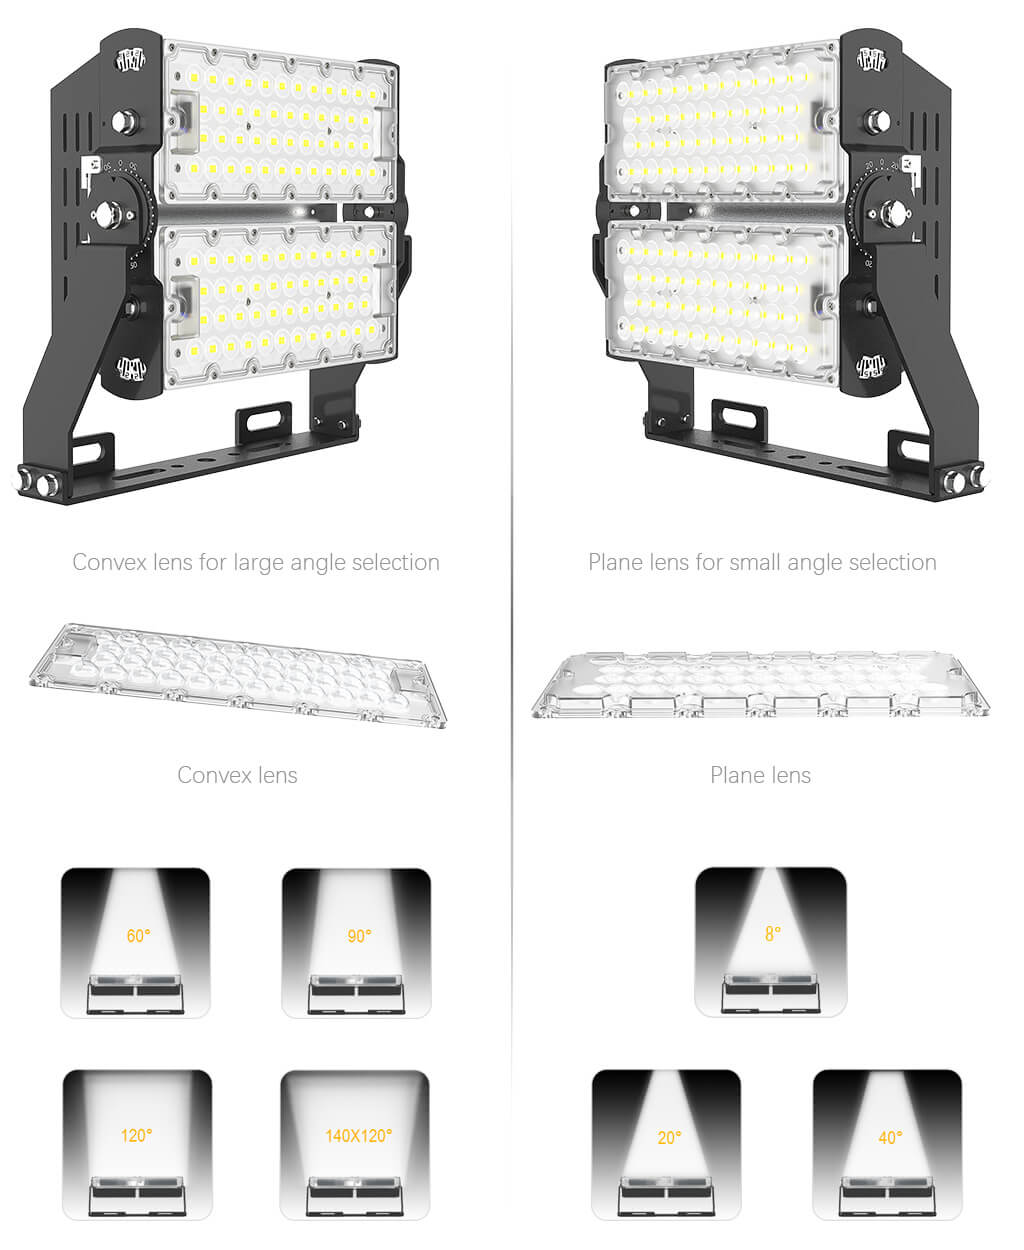 traditional flood light price seriesb to meet the special lighting applications for lighting spectator-13